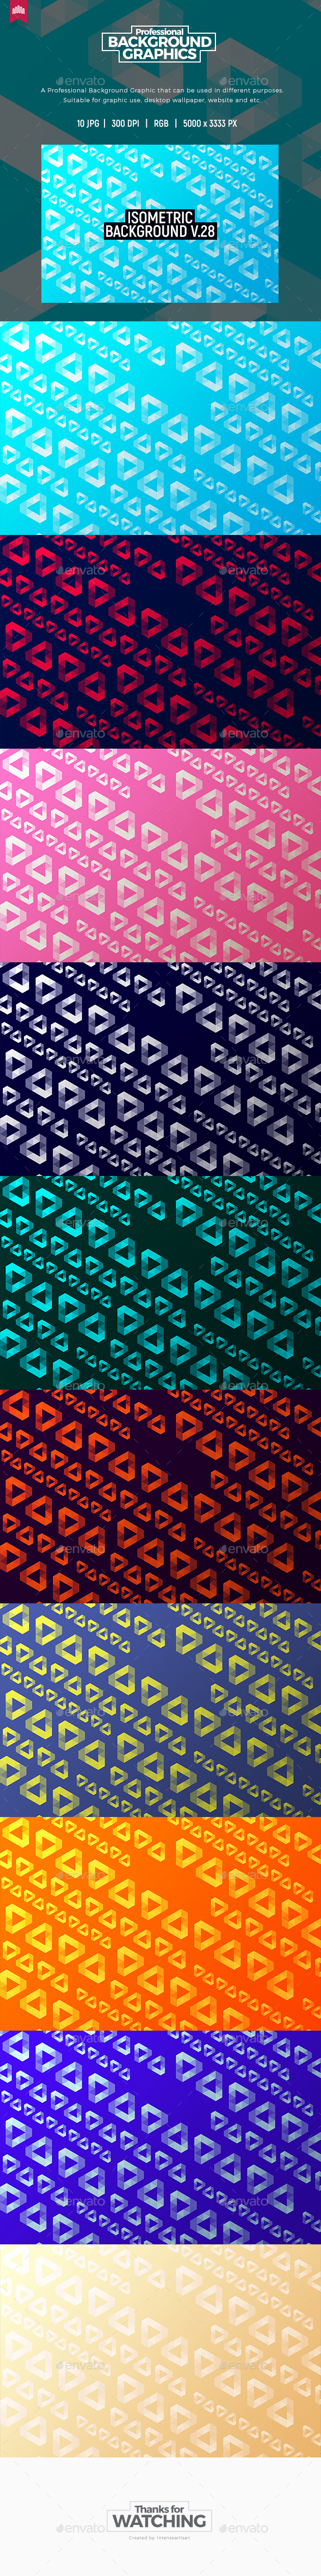 Isometric Background V.28 - Patterns Backgrounds